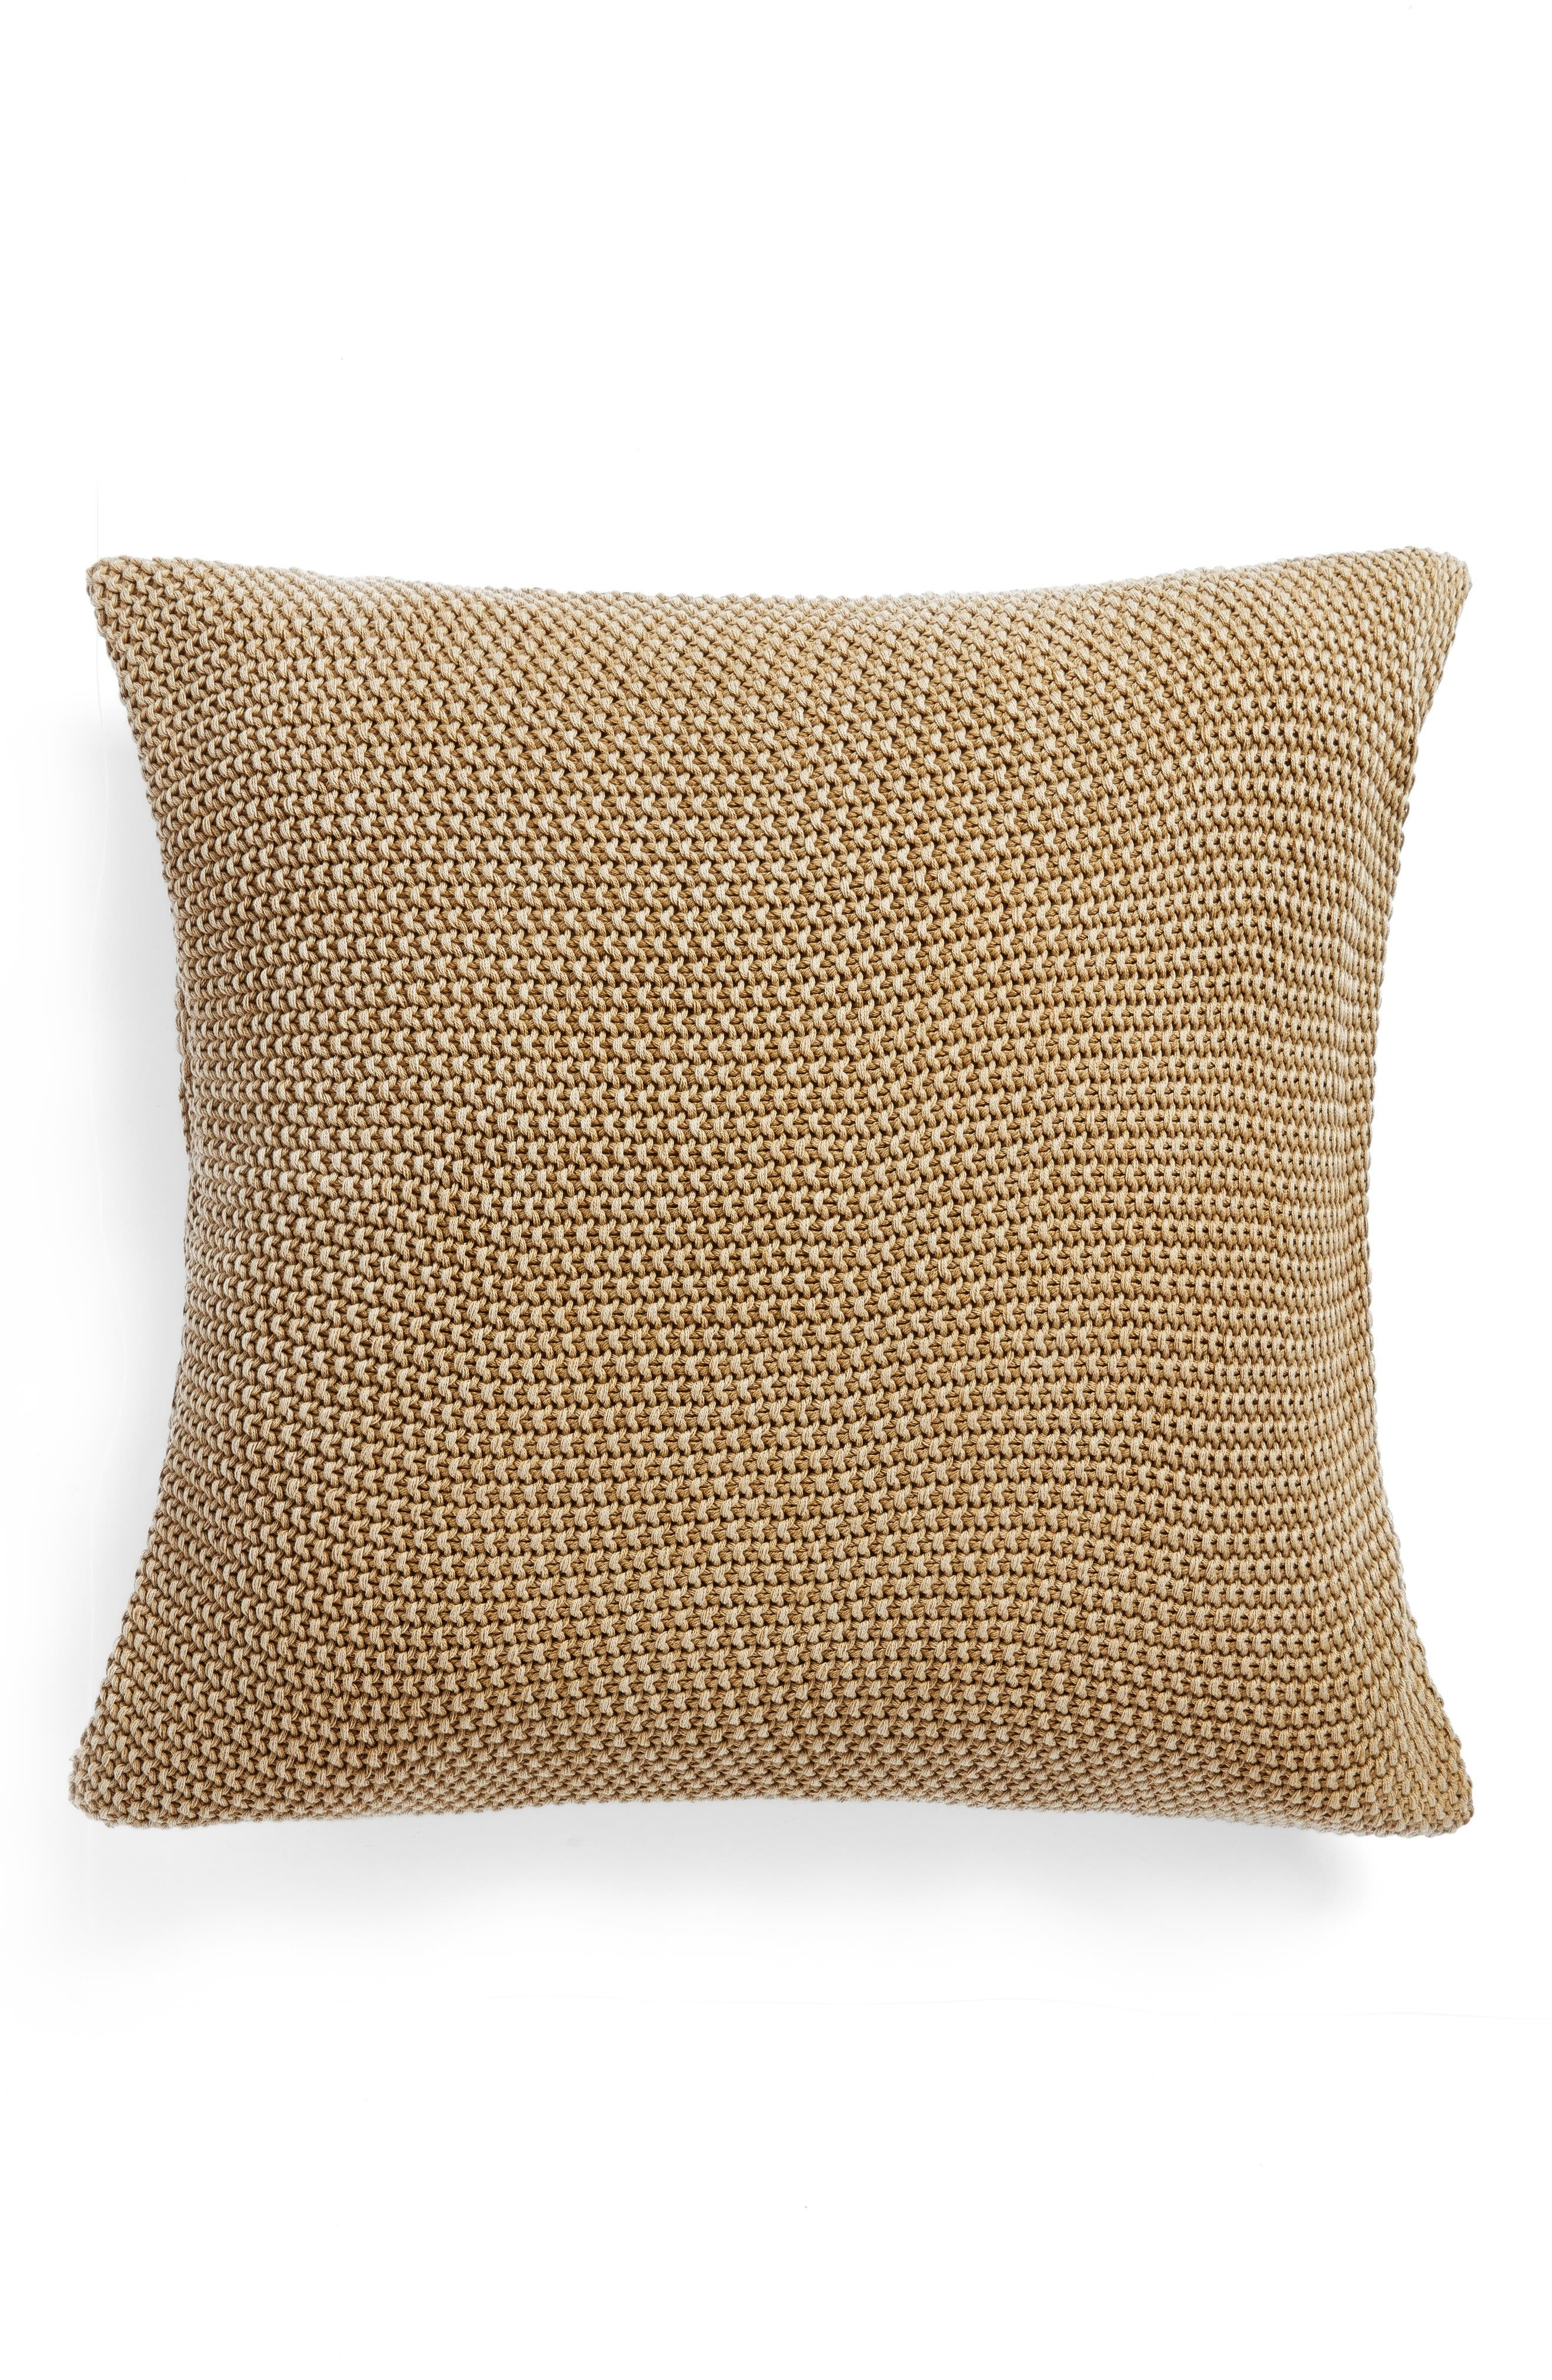 Seed Stitch Accent Pillow,                         Main,                         color, Olive Estate